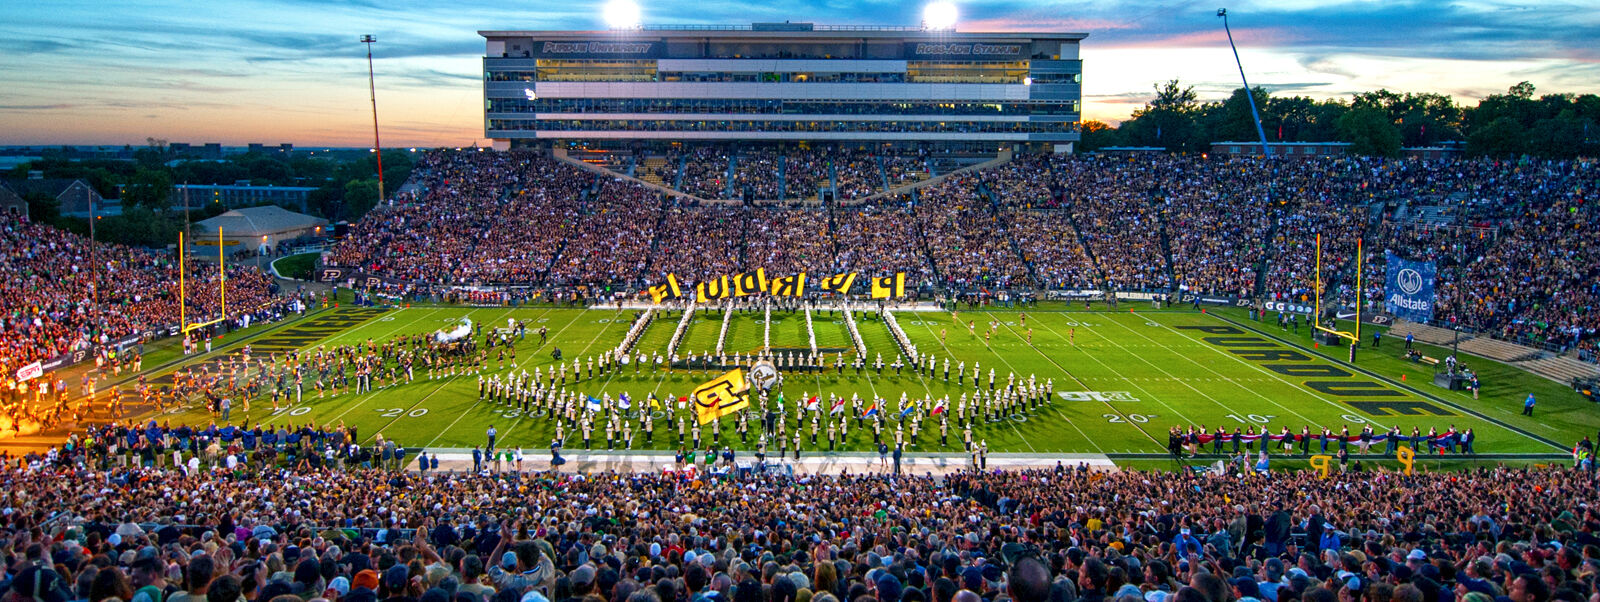 Minnesota Golden Gophers at Purdue Boilermakers Football